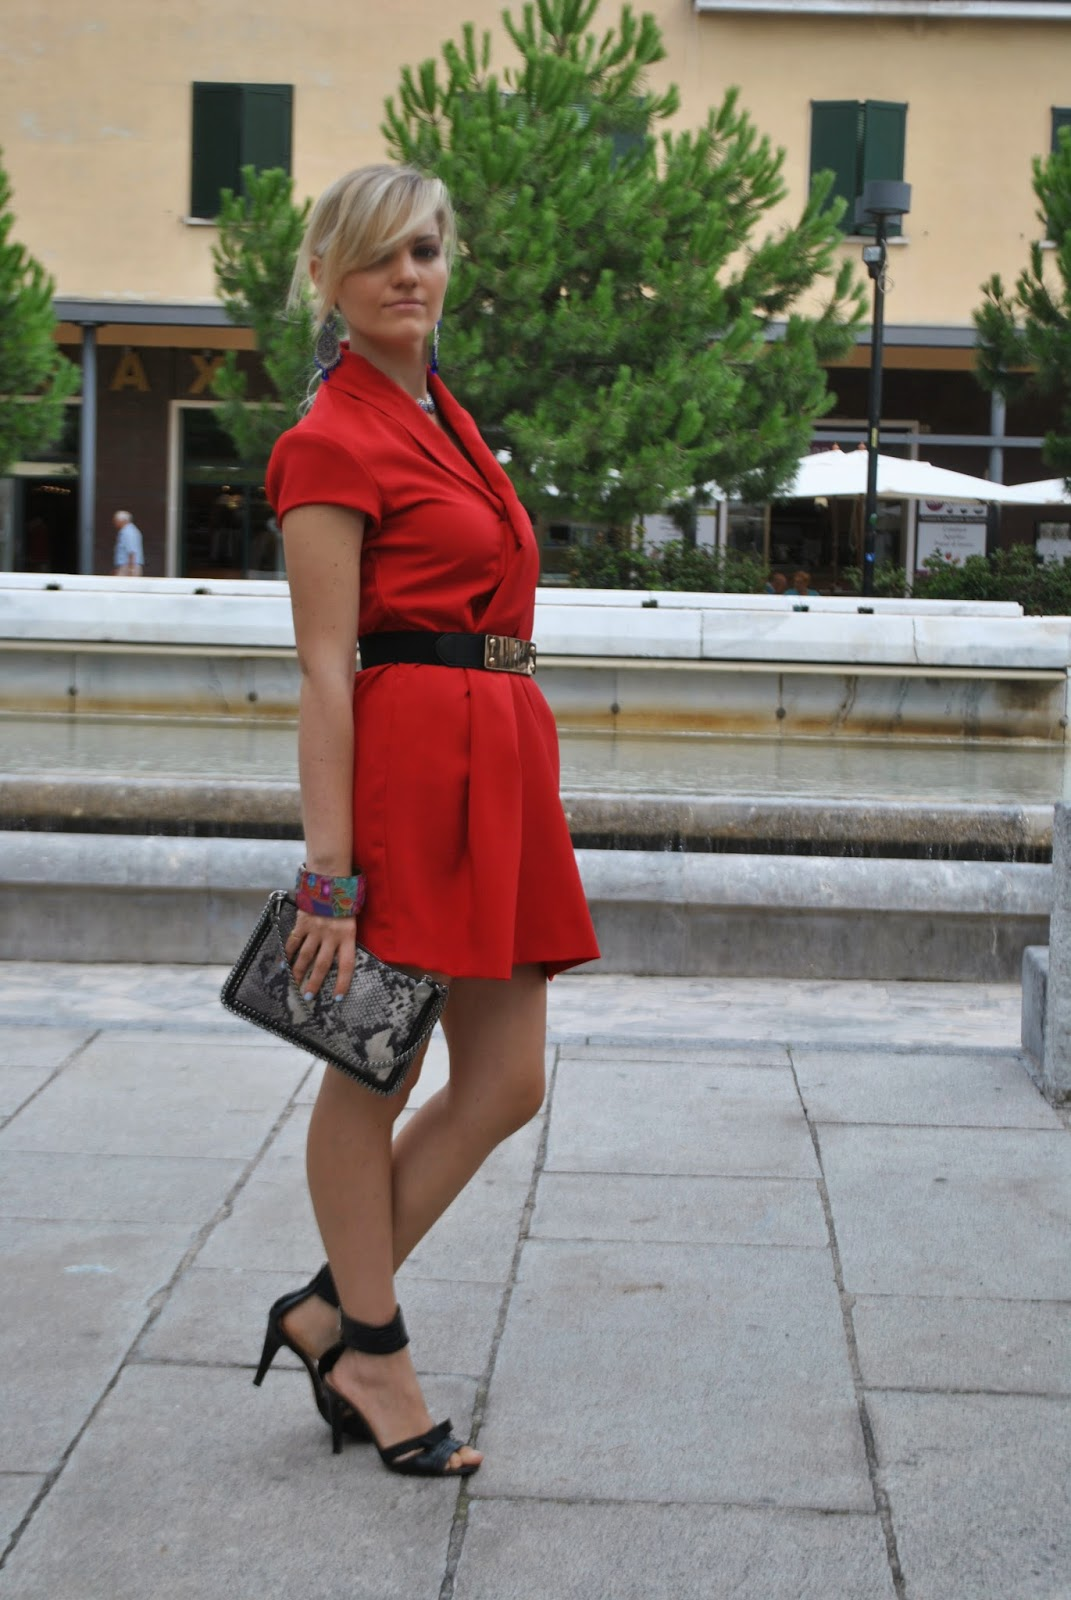 outfit recap august 2014 outfit agosto 2014 outfit estate 2014 outfit estivi ragazze majique gioielli majique outfit estate 2014 outfit mariafelicia magno fashion blogger di colorblock by felym fornarina pimkie gioielli majique majique jewels majique london jewels fashion blogger italiane fashion bloggers italy look book street style look book august 2014 street style august 2014